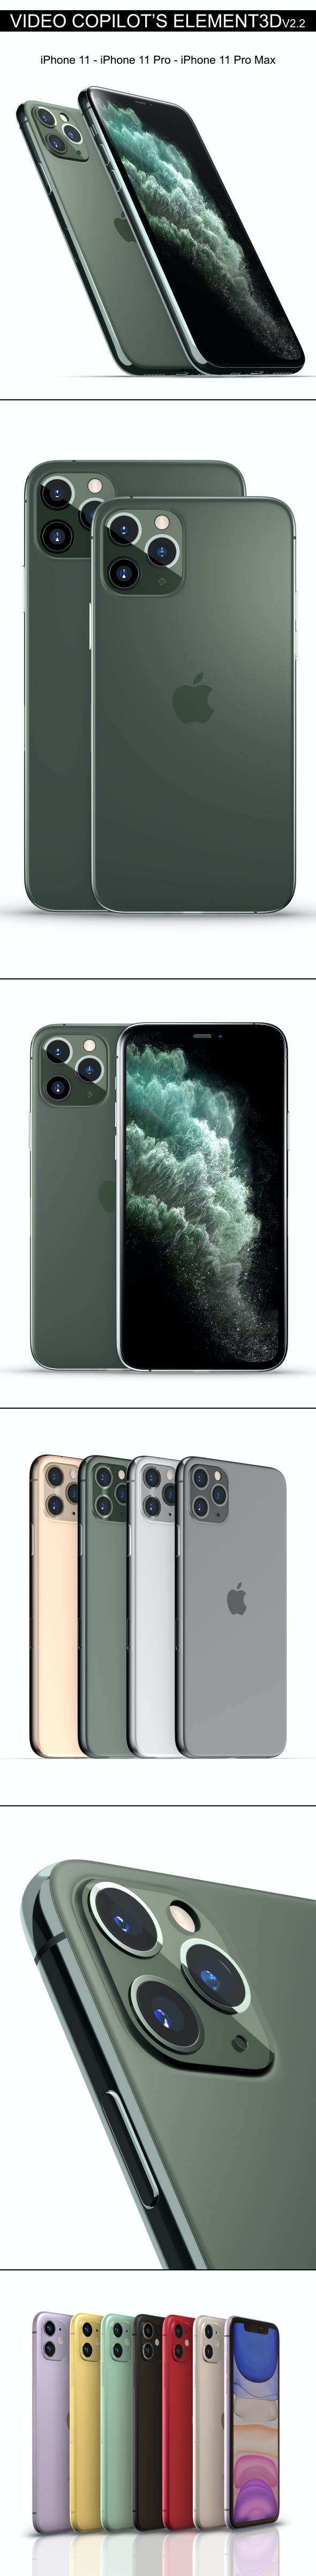 Element3D - iPhone 11 Collection - 3DOcean Item for Sale